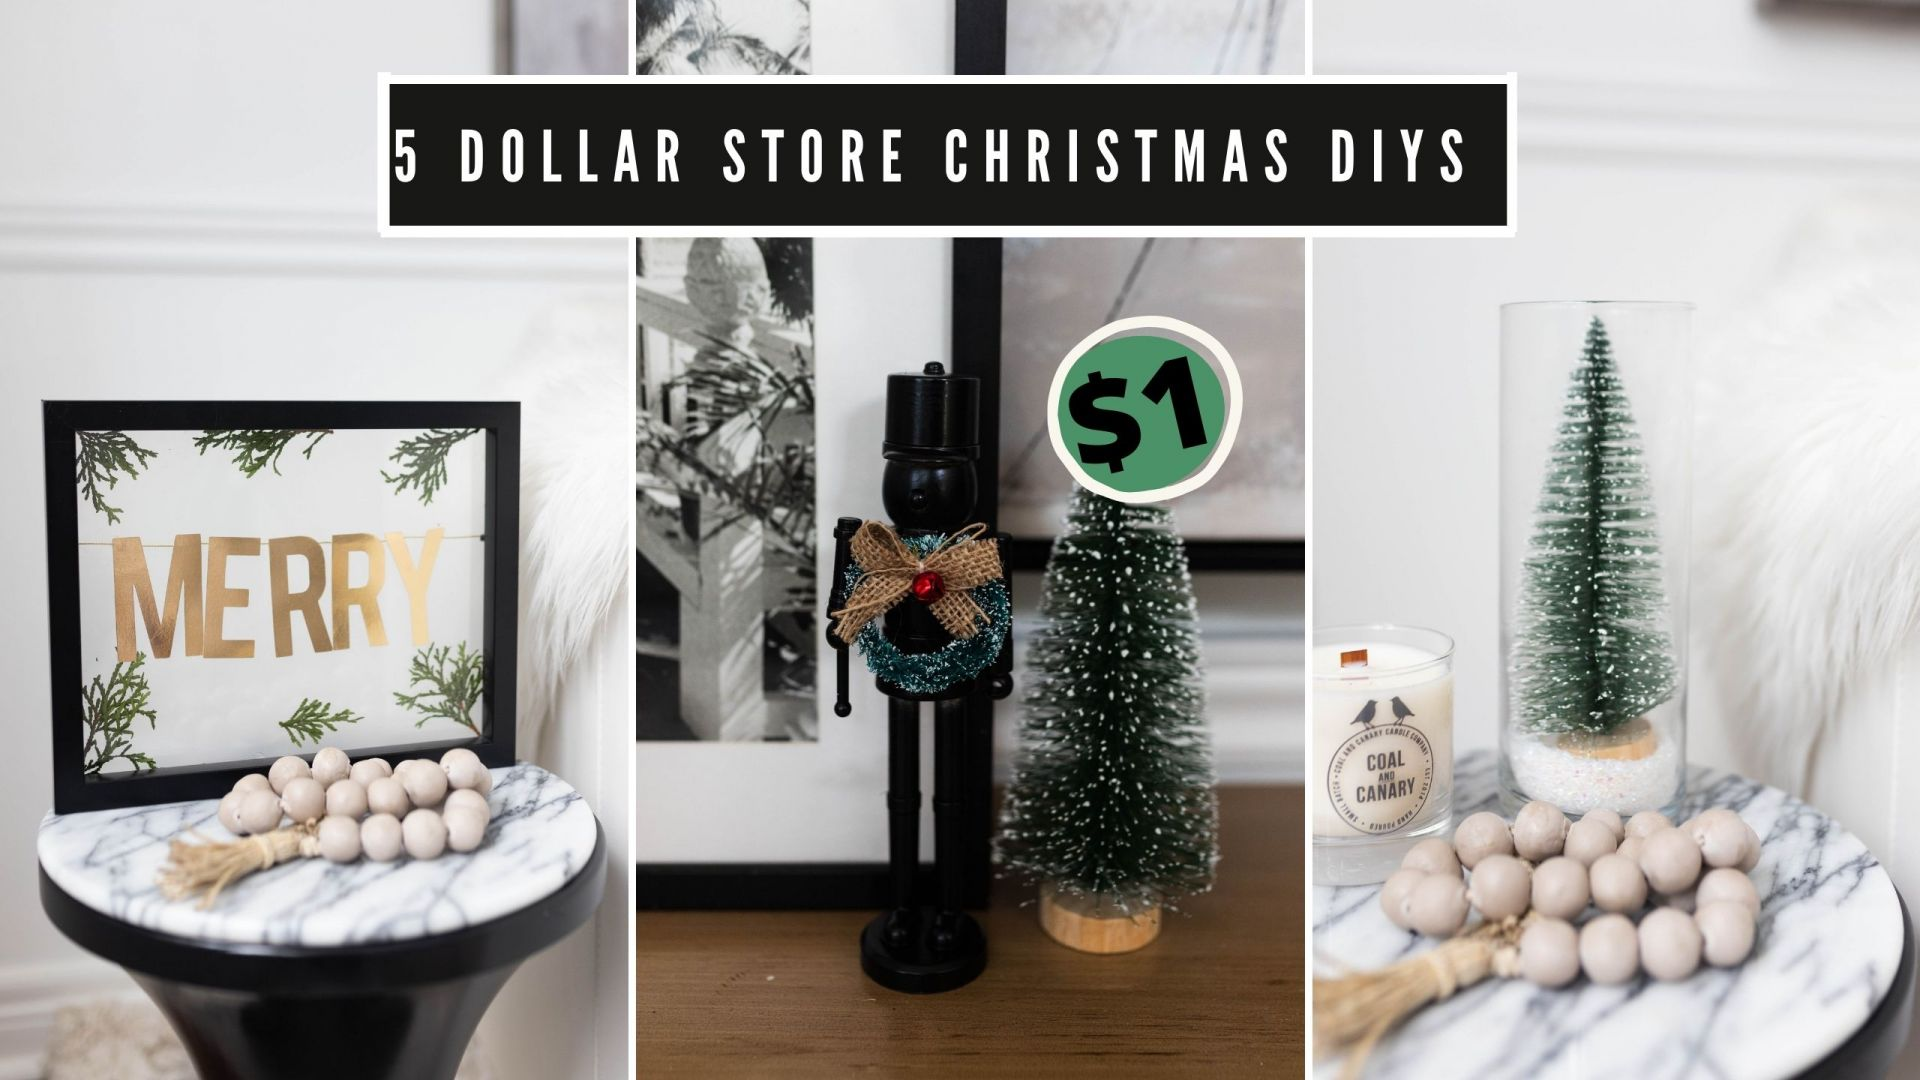 5 Modern DIY Dollar Store Christmas Decor Ideasrn DIY Dollar Store Christmas Decor Ideas